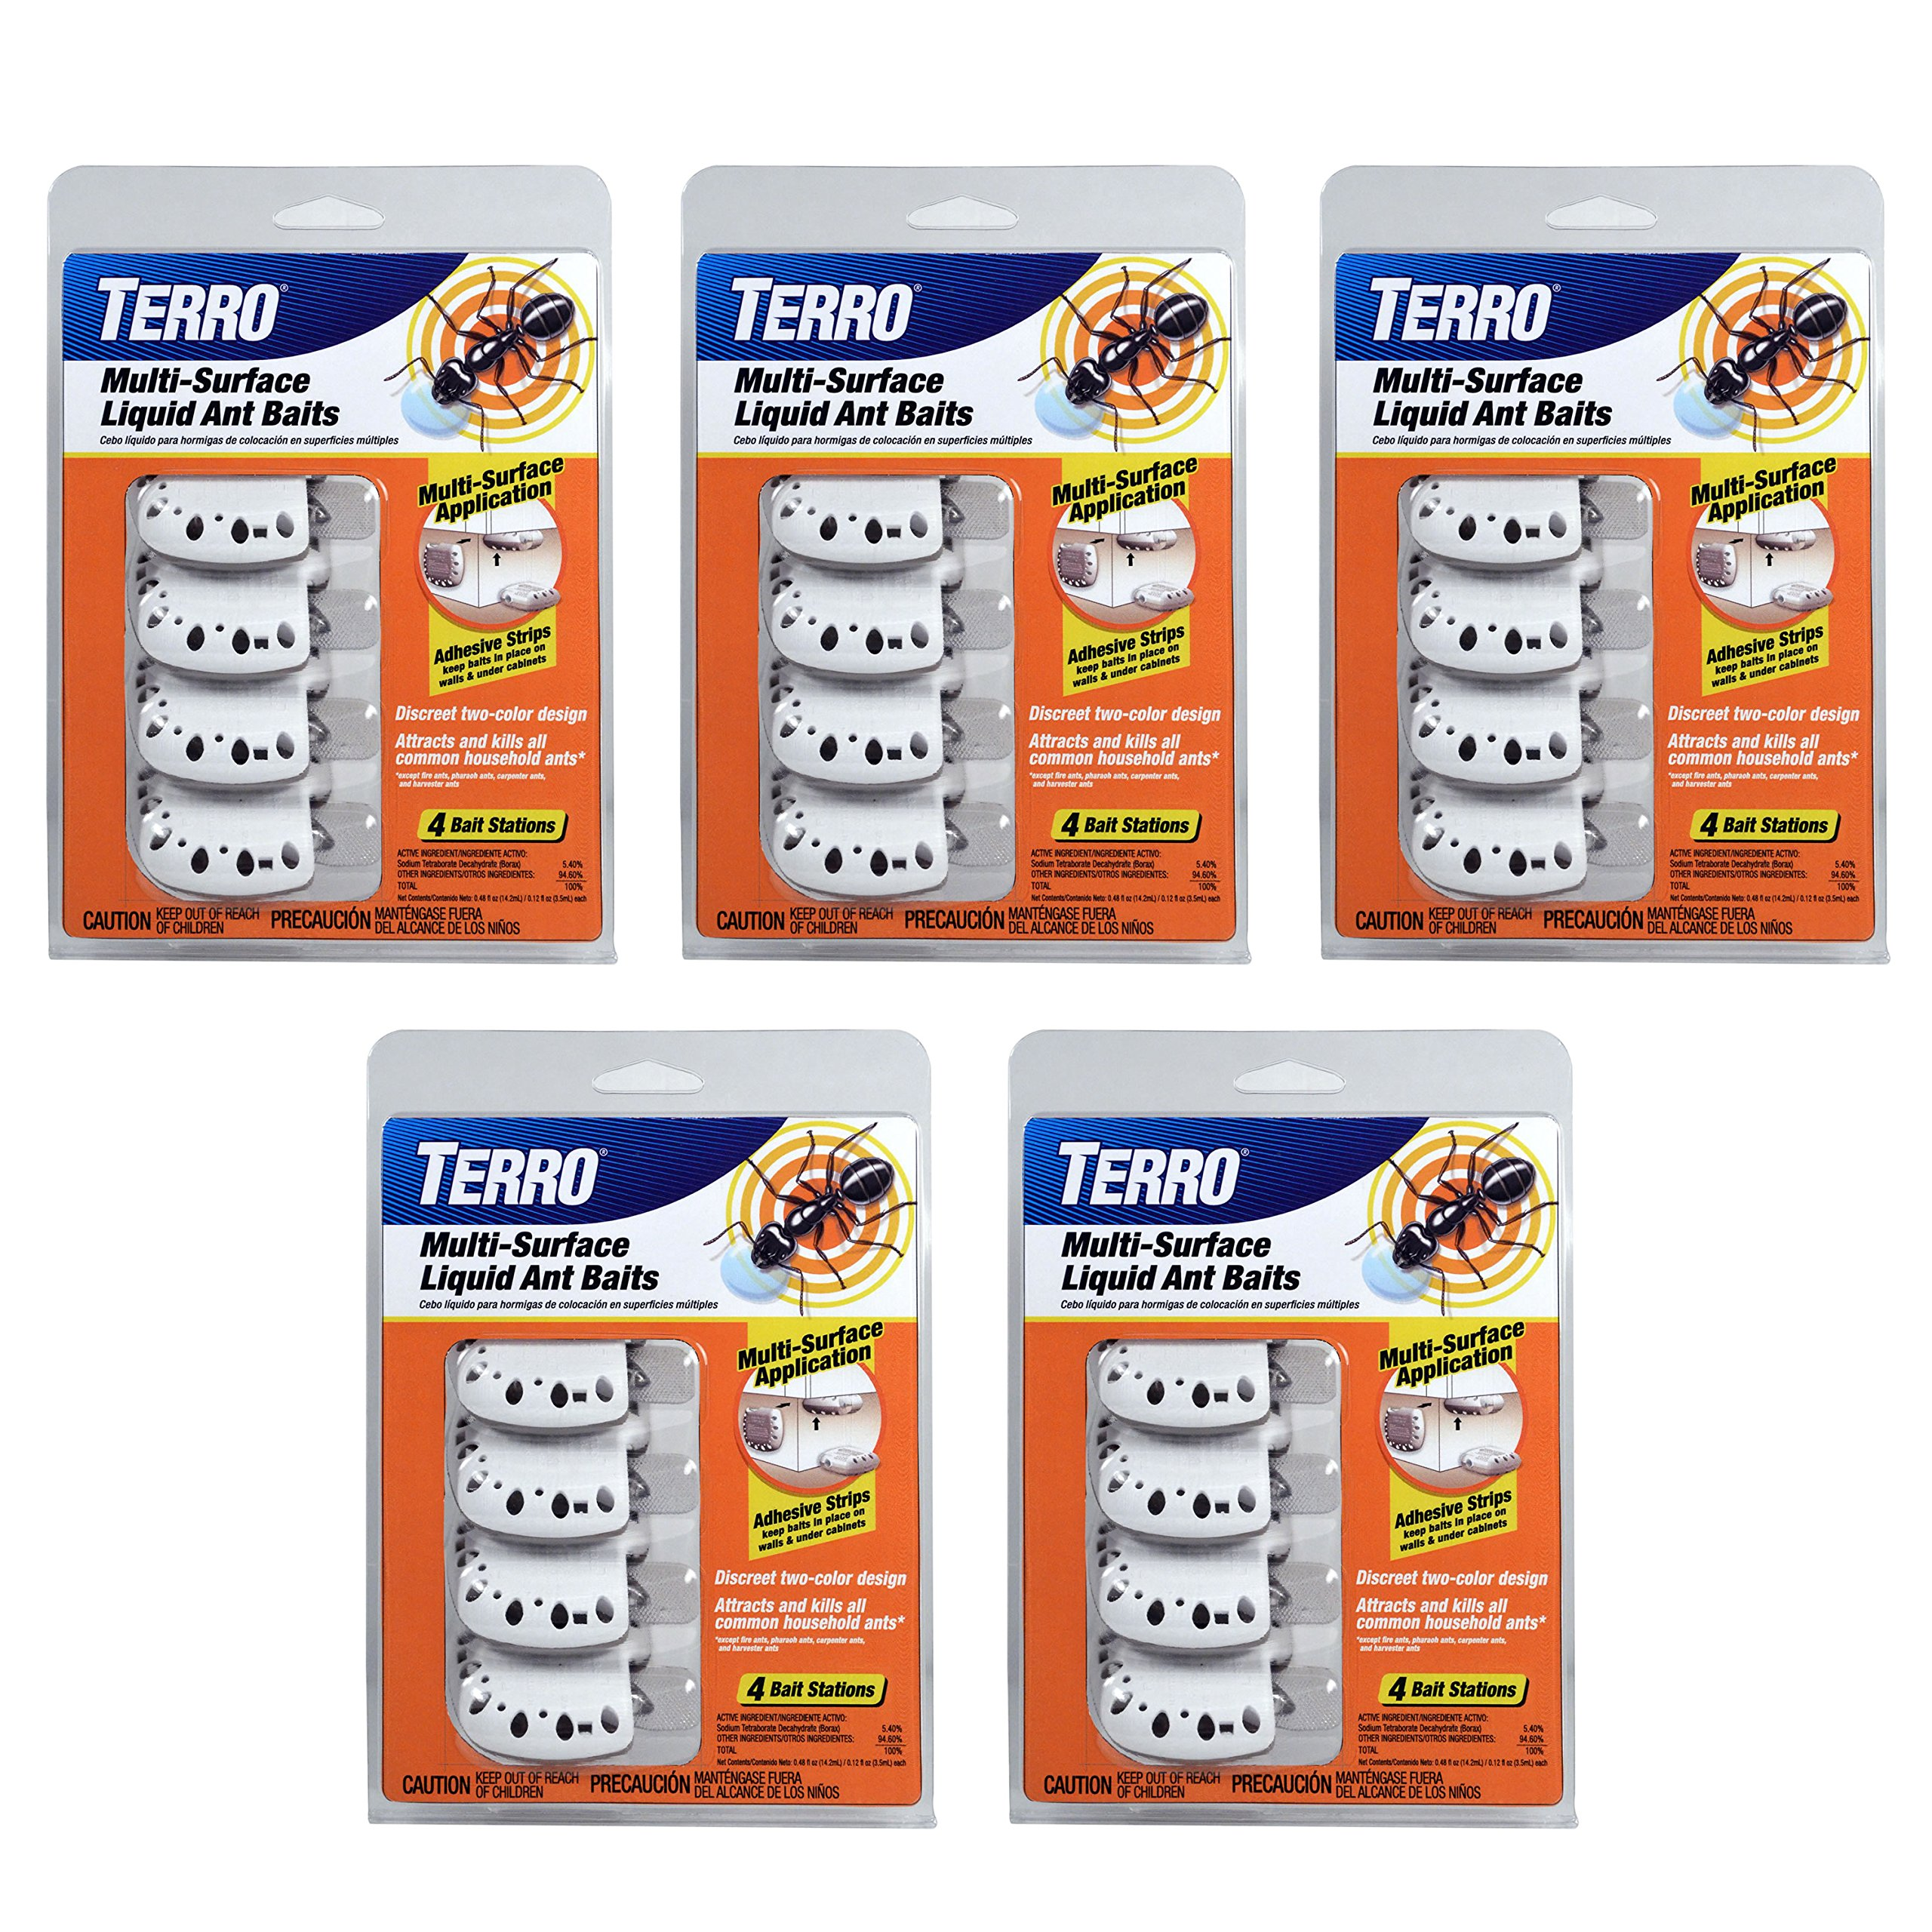 Terro T334 4 5 Pack Multi-Surface Liquid Ant 20 Discreet Bait Stations, White by Terro